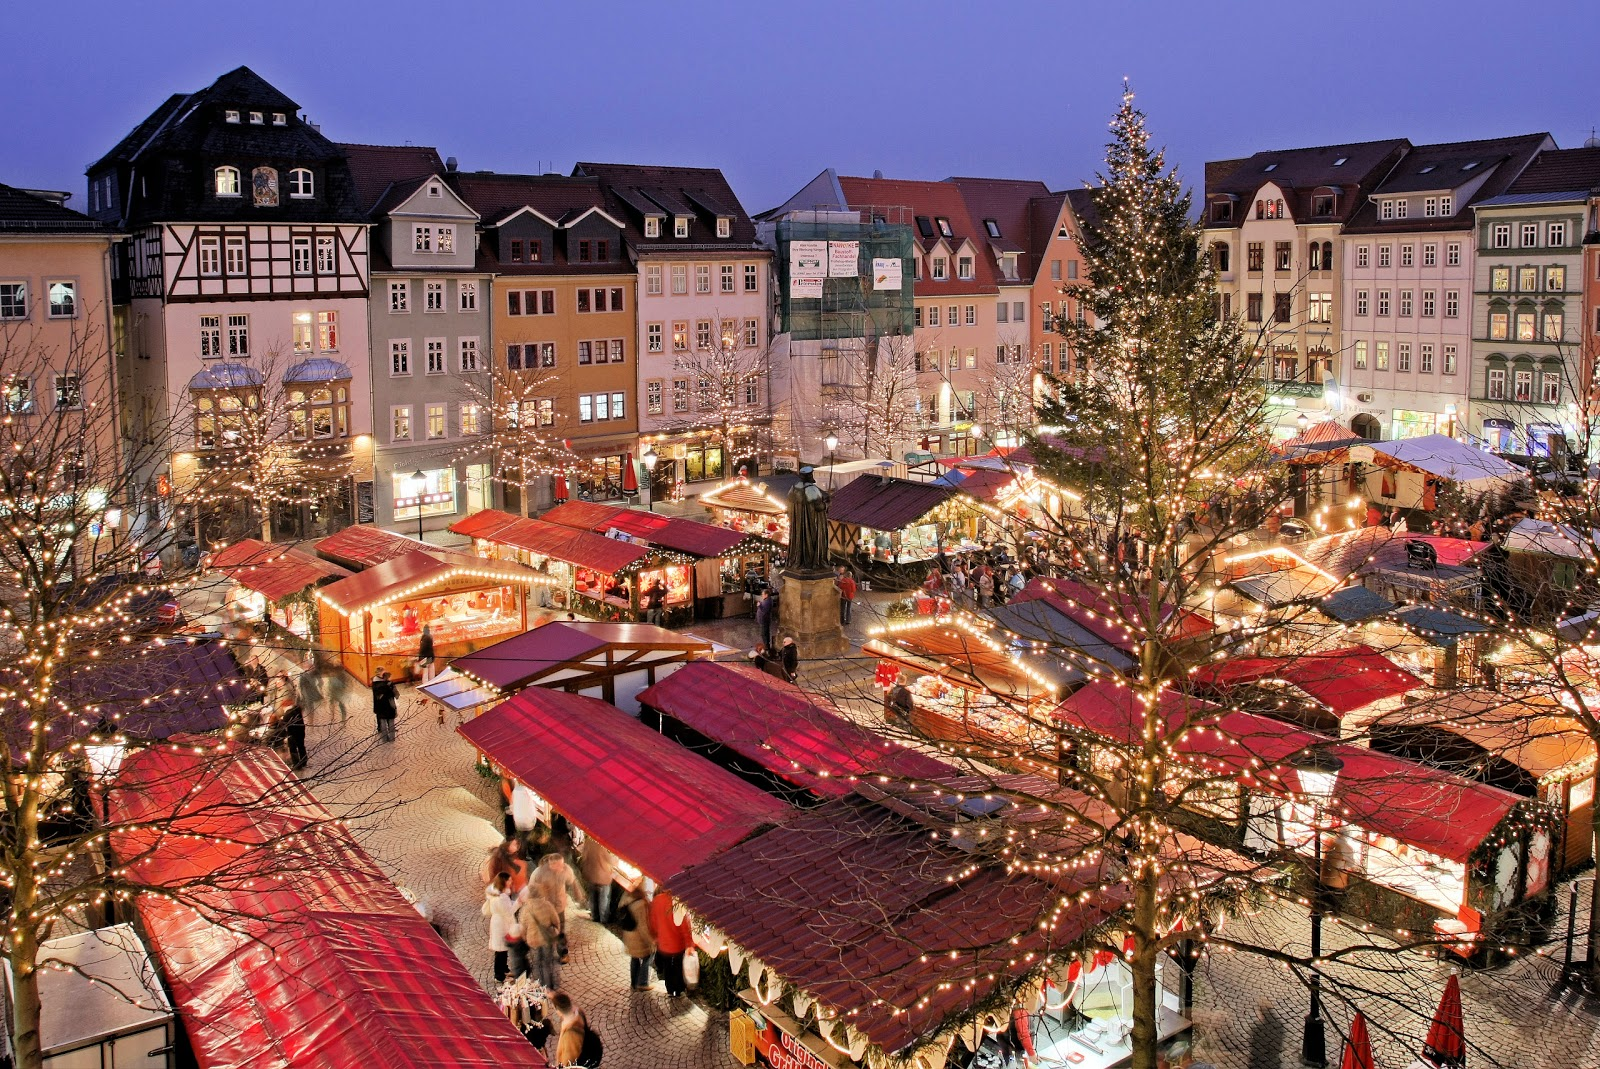 The Jena Christkindlmarkt Or Christmas Market In Germany